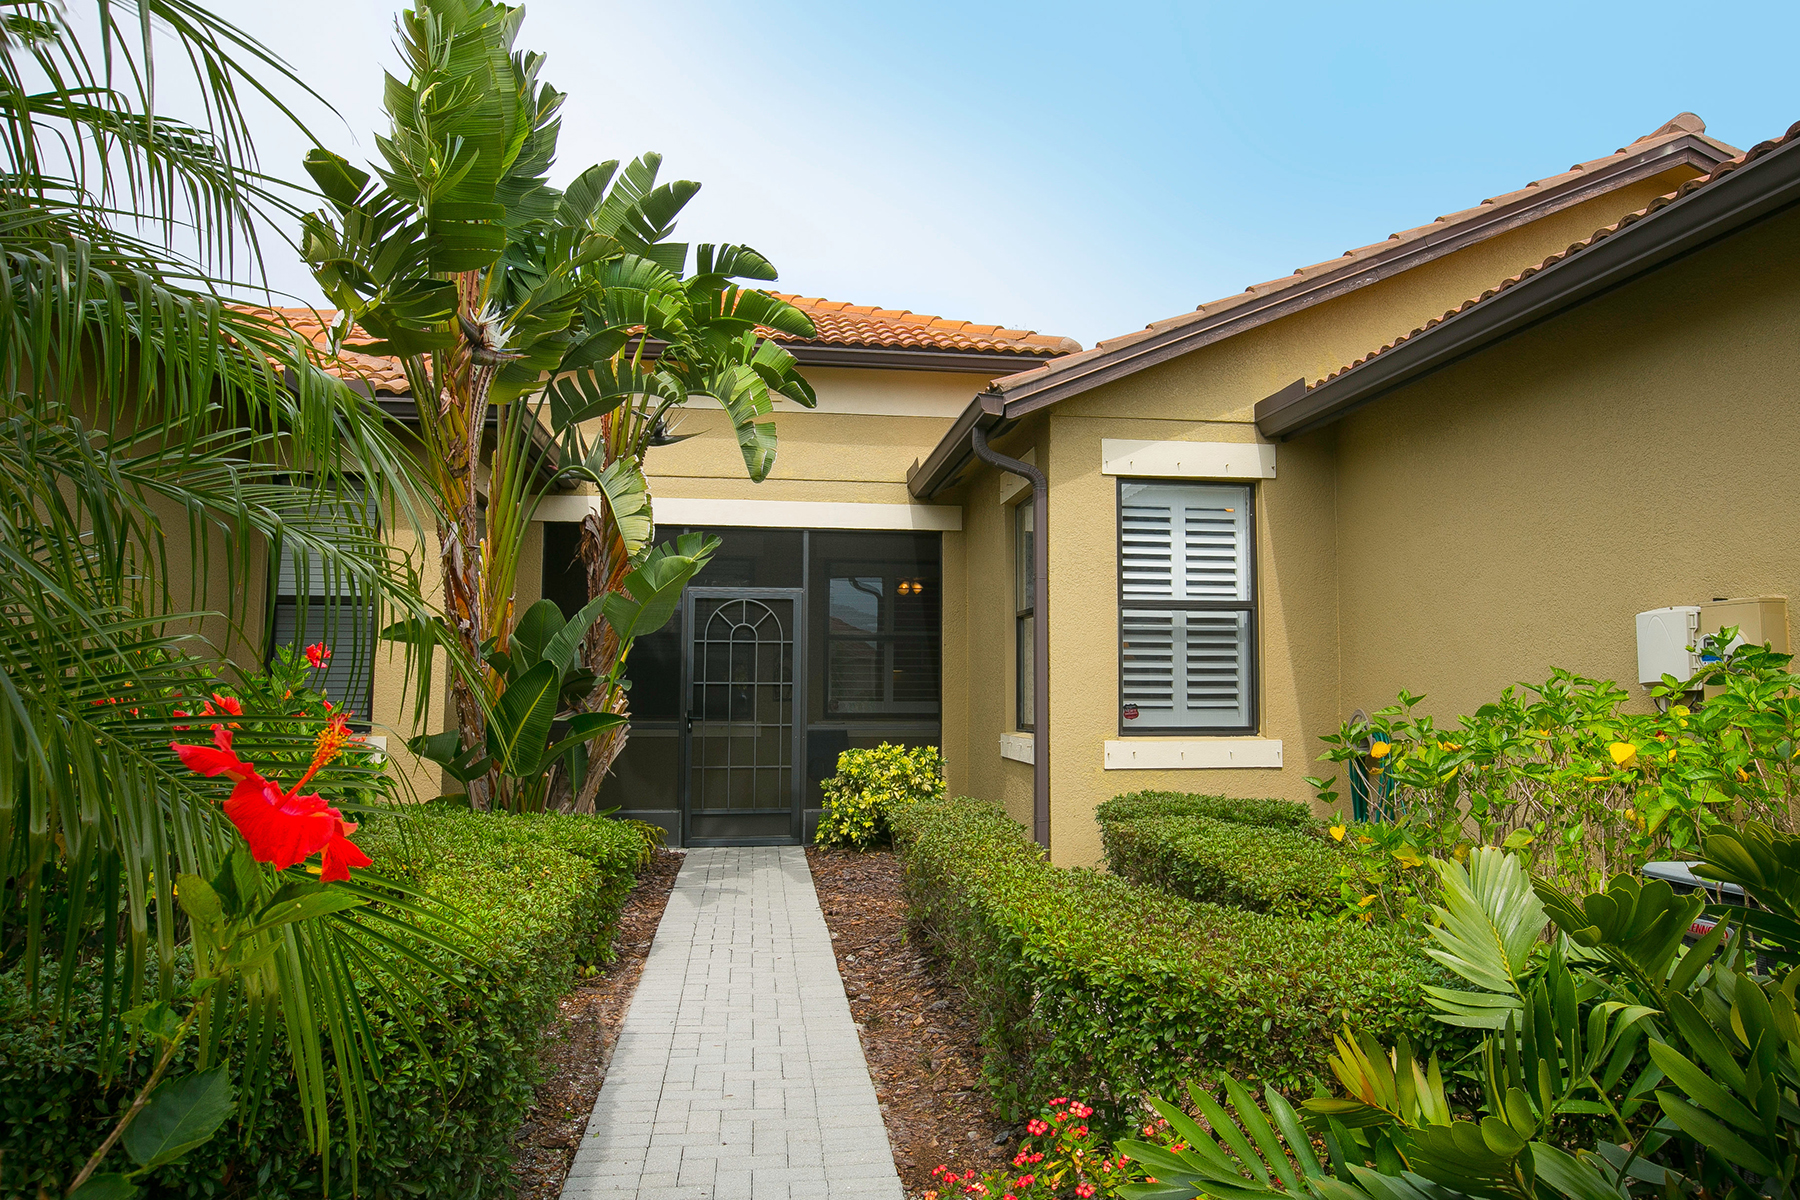 Townhouse for Sale at VENETIAN FALLS 11186 Campazzo Dr Venice, Florida, 34292 United States